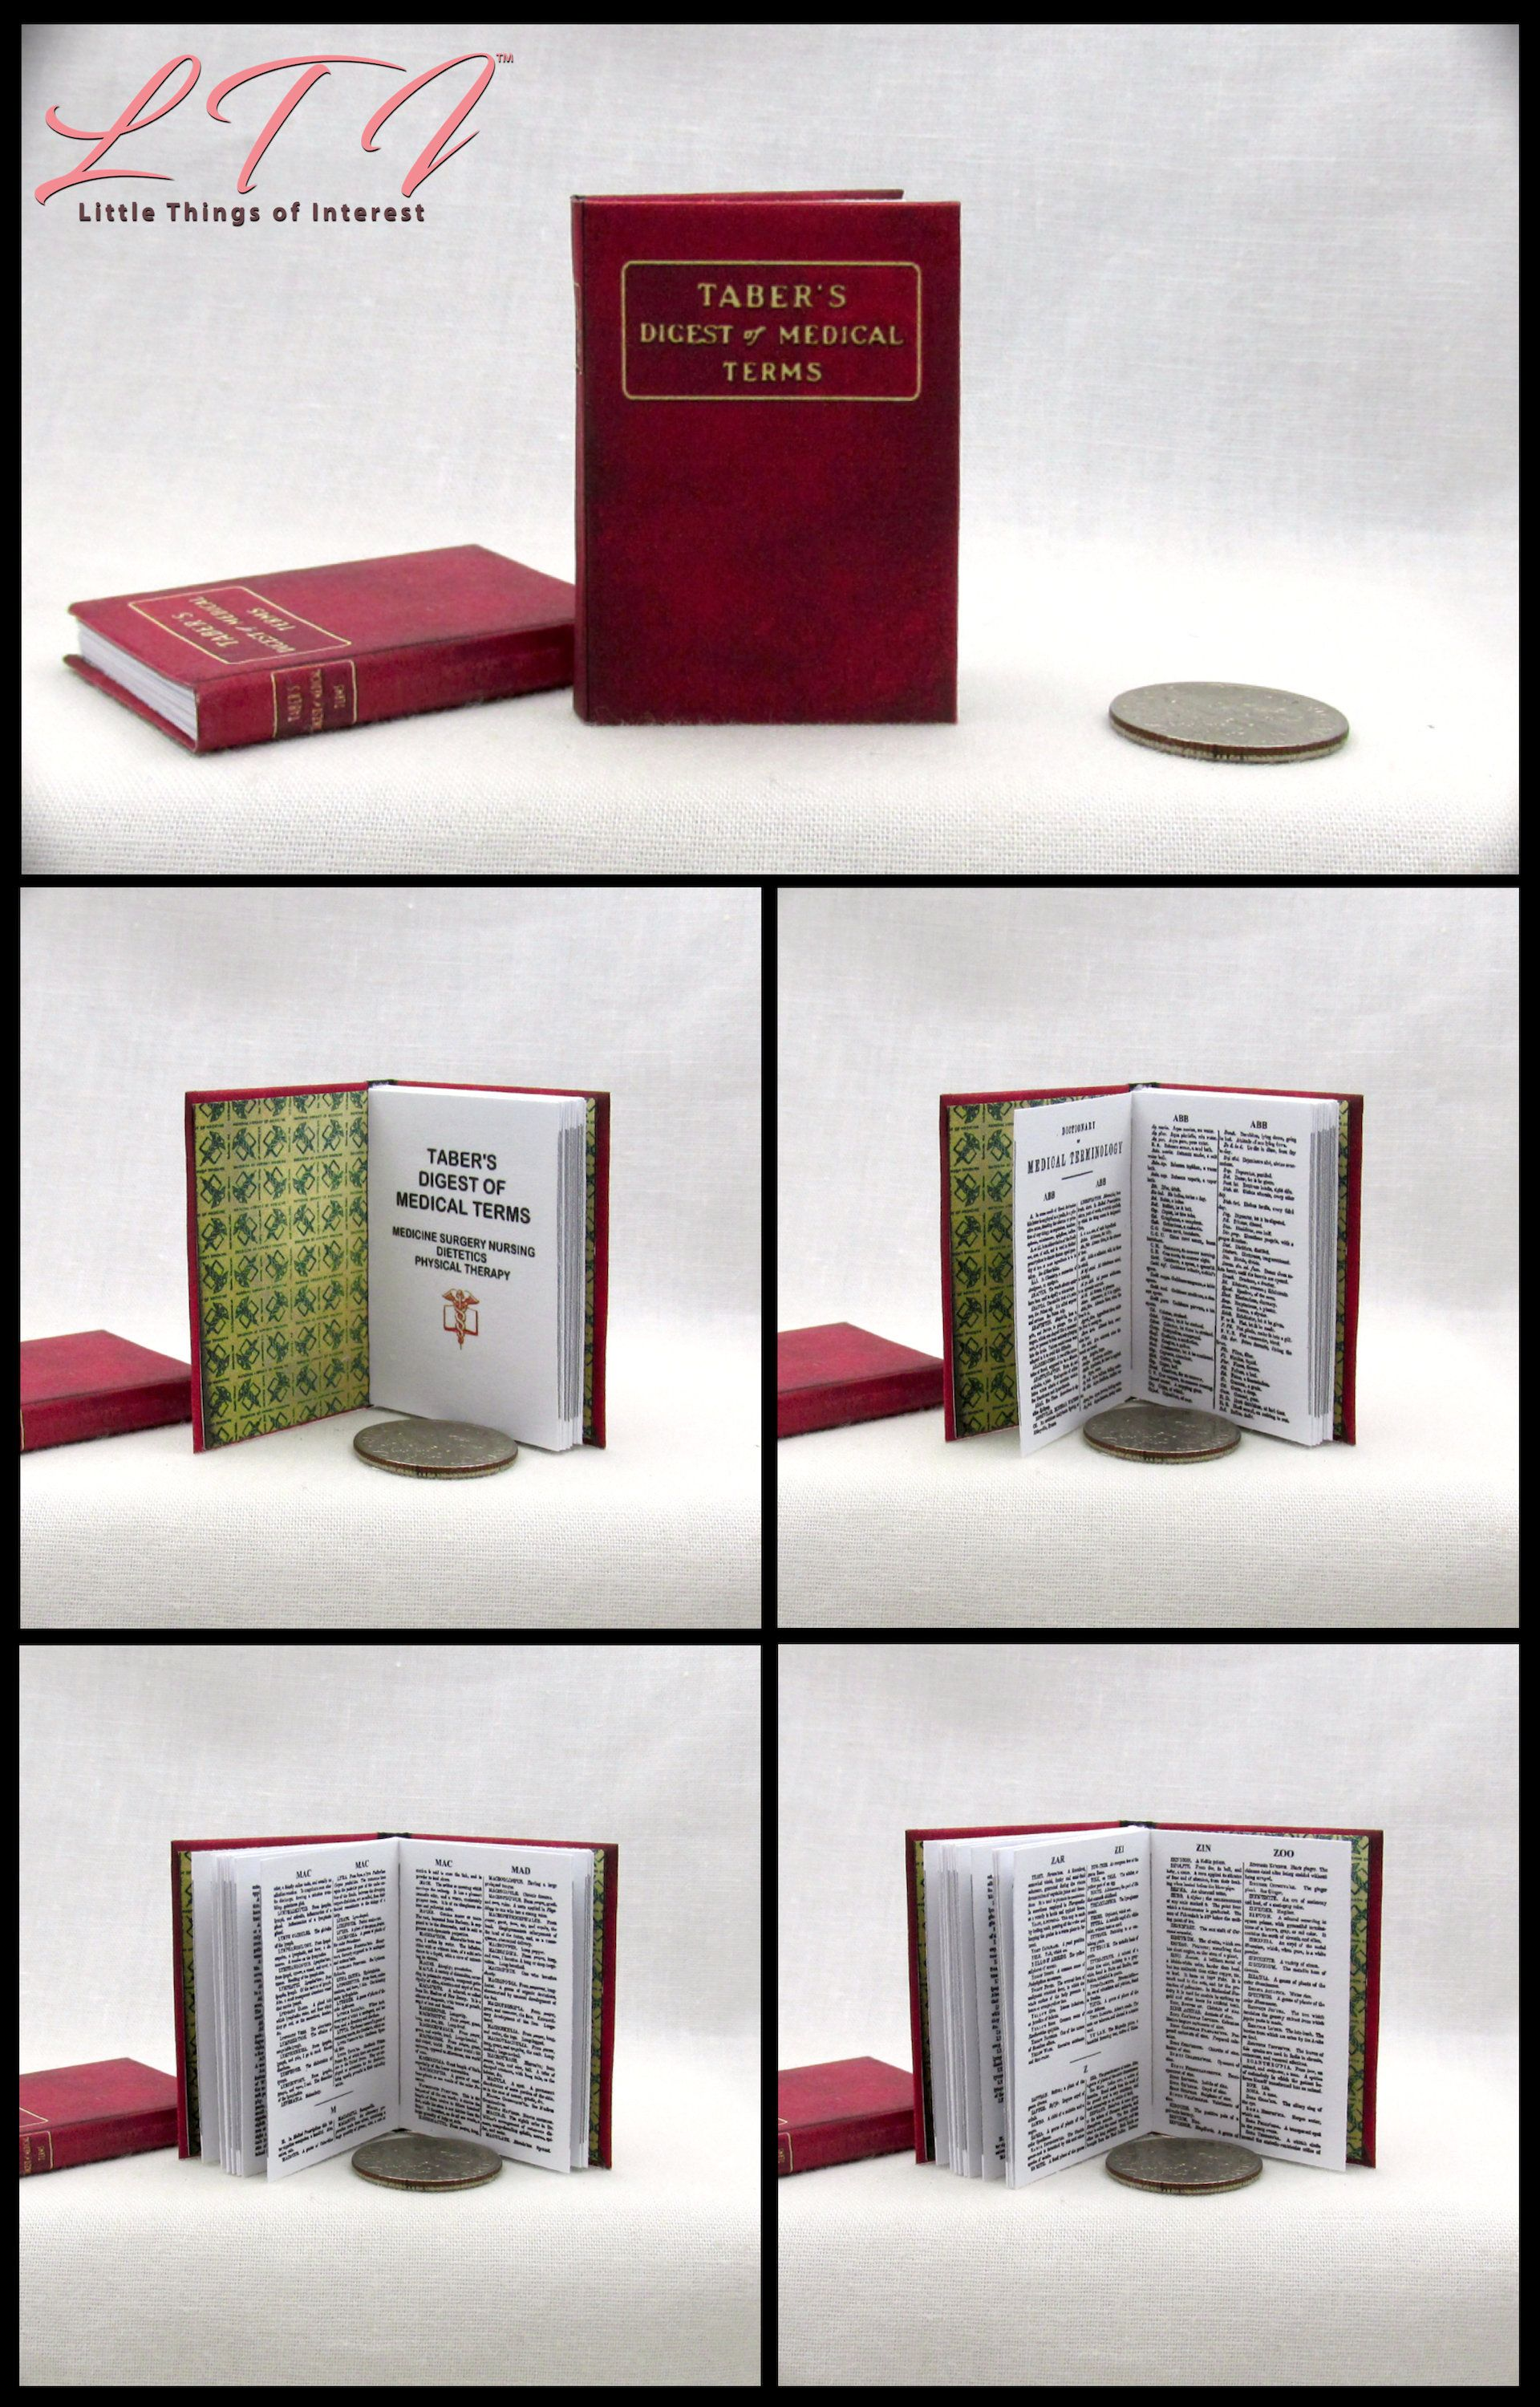 MEDICAL DICTIONARY 1:6 Scale Book Readable Miniature Medical Book Doctor Office Health Medical Nurse Biology Human Body #miniaturemedical